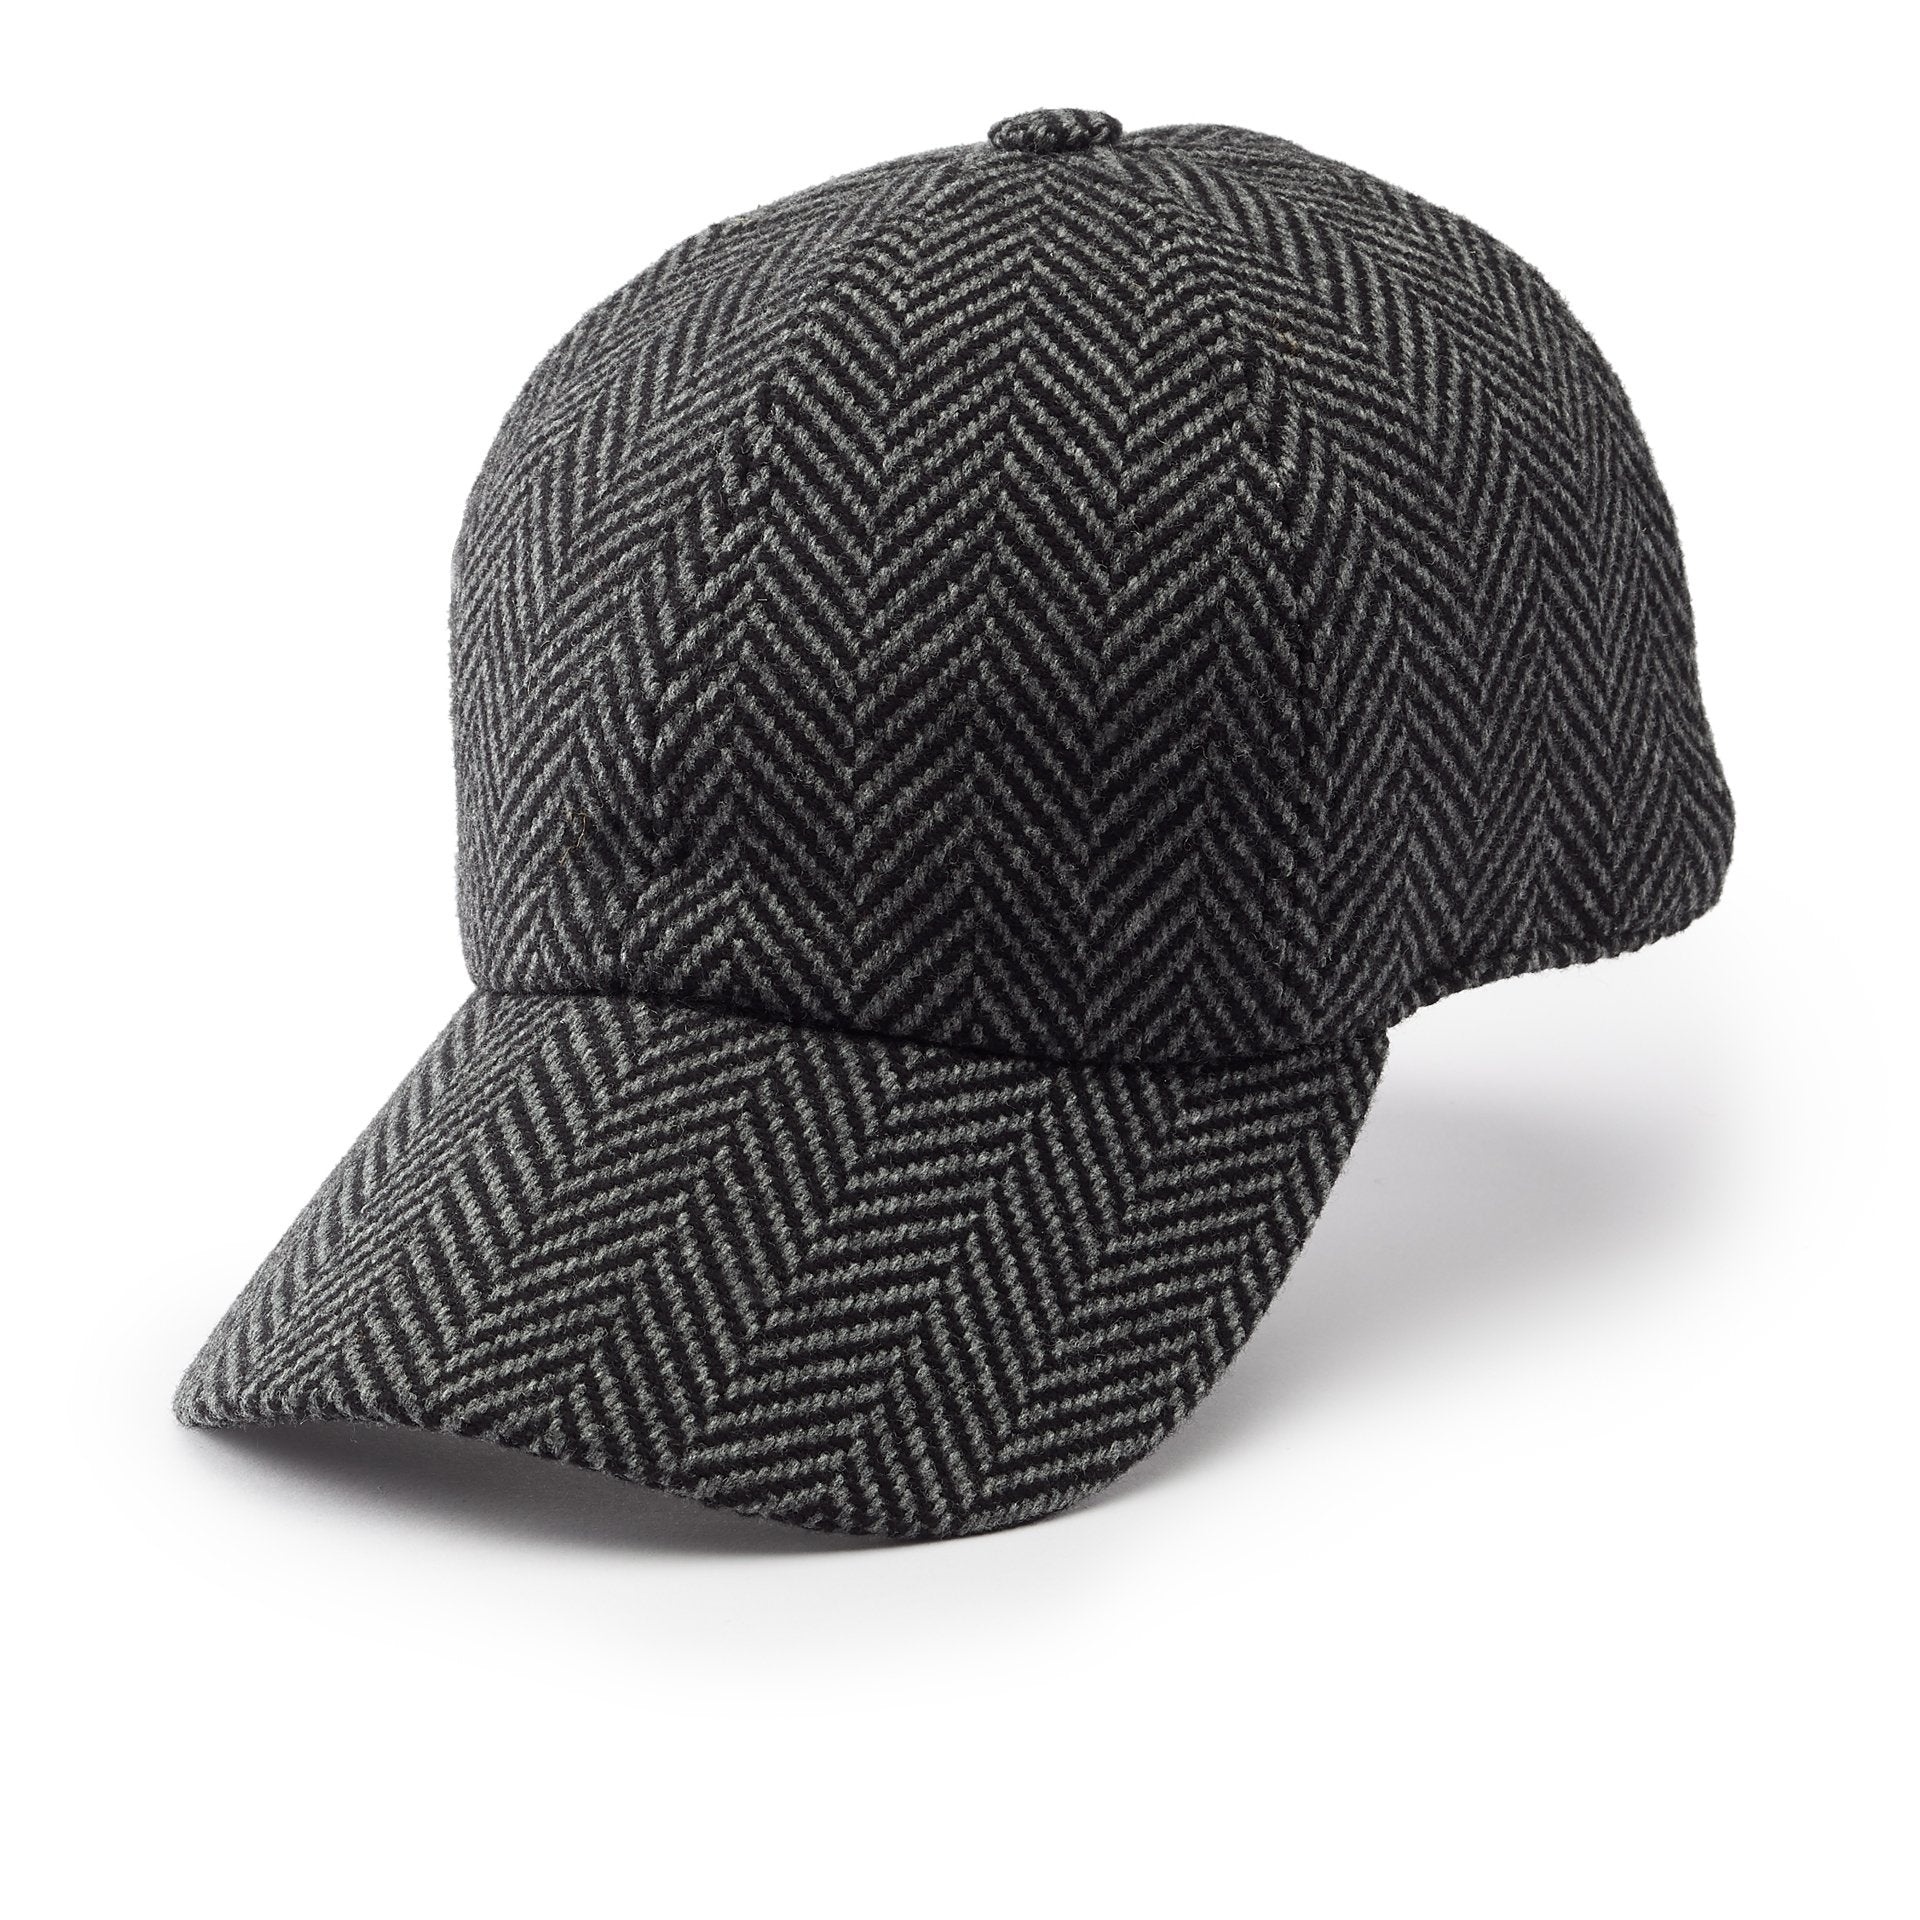 Escorial wool baseball cap - Escorial Wool hats - Lock & Co. Hatters London UK